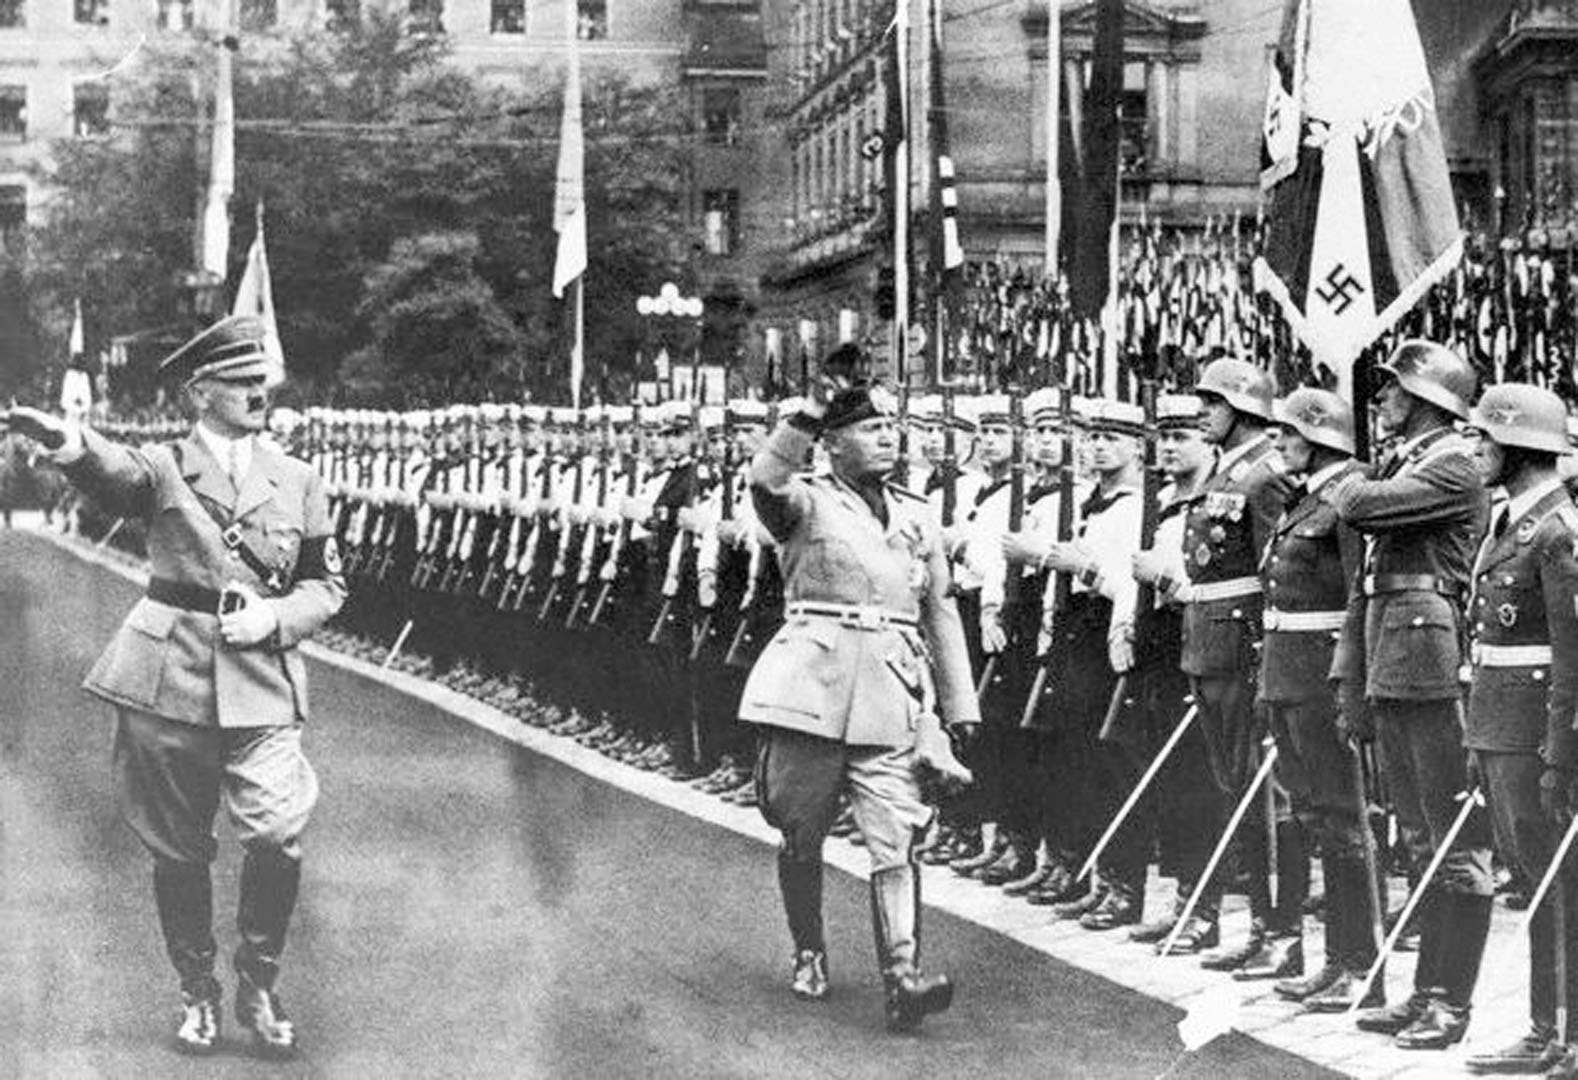 Hitler And Mussolini Saluting Their Armies